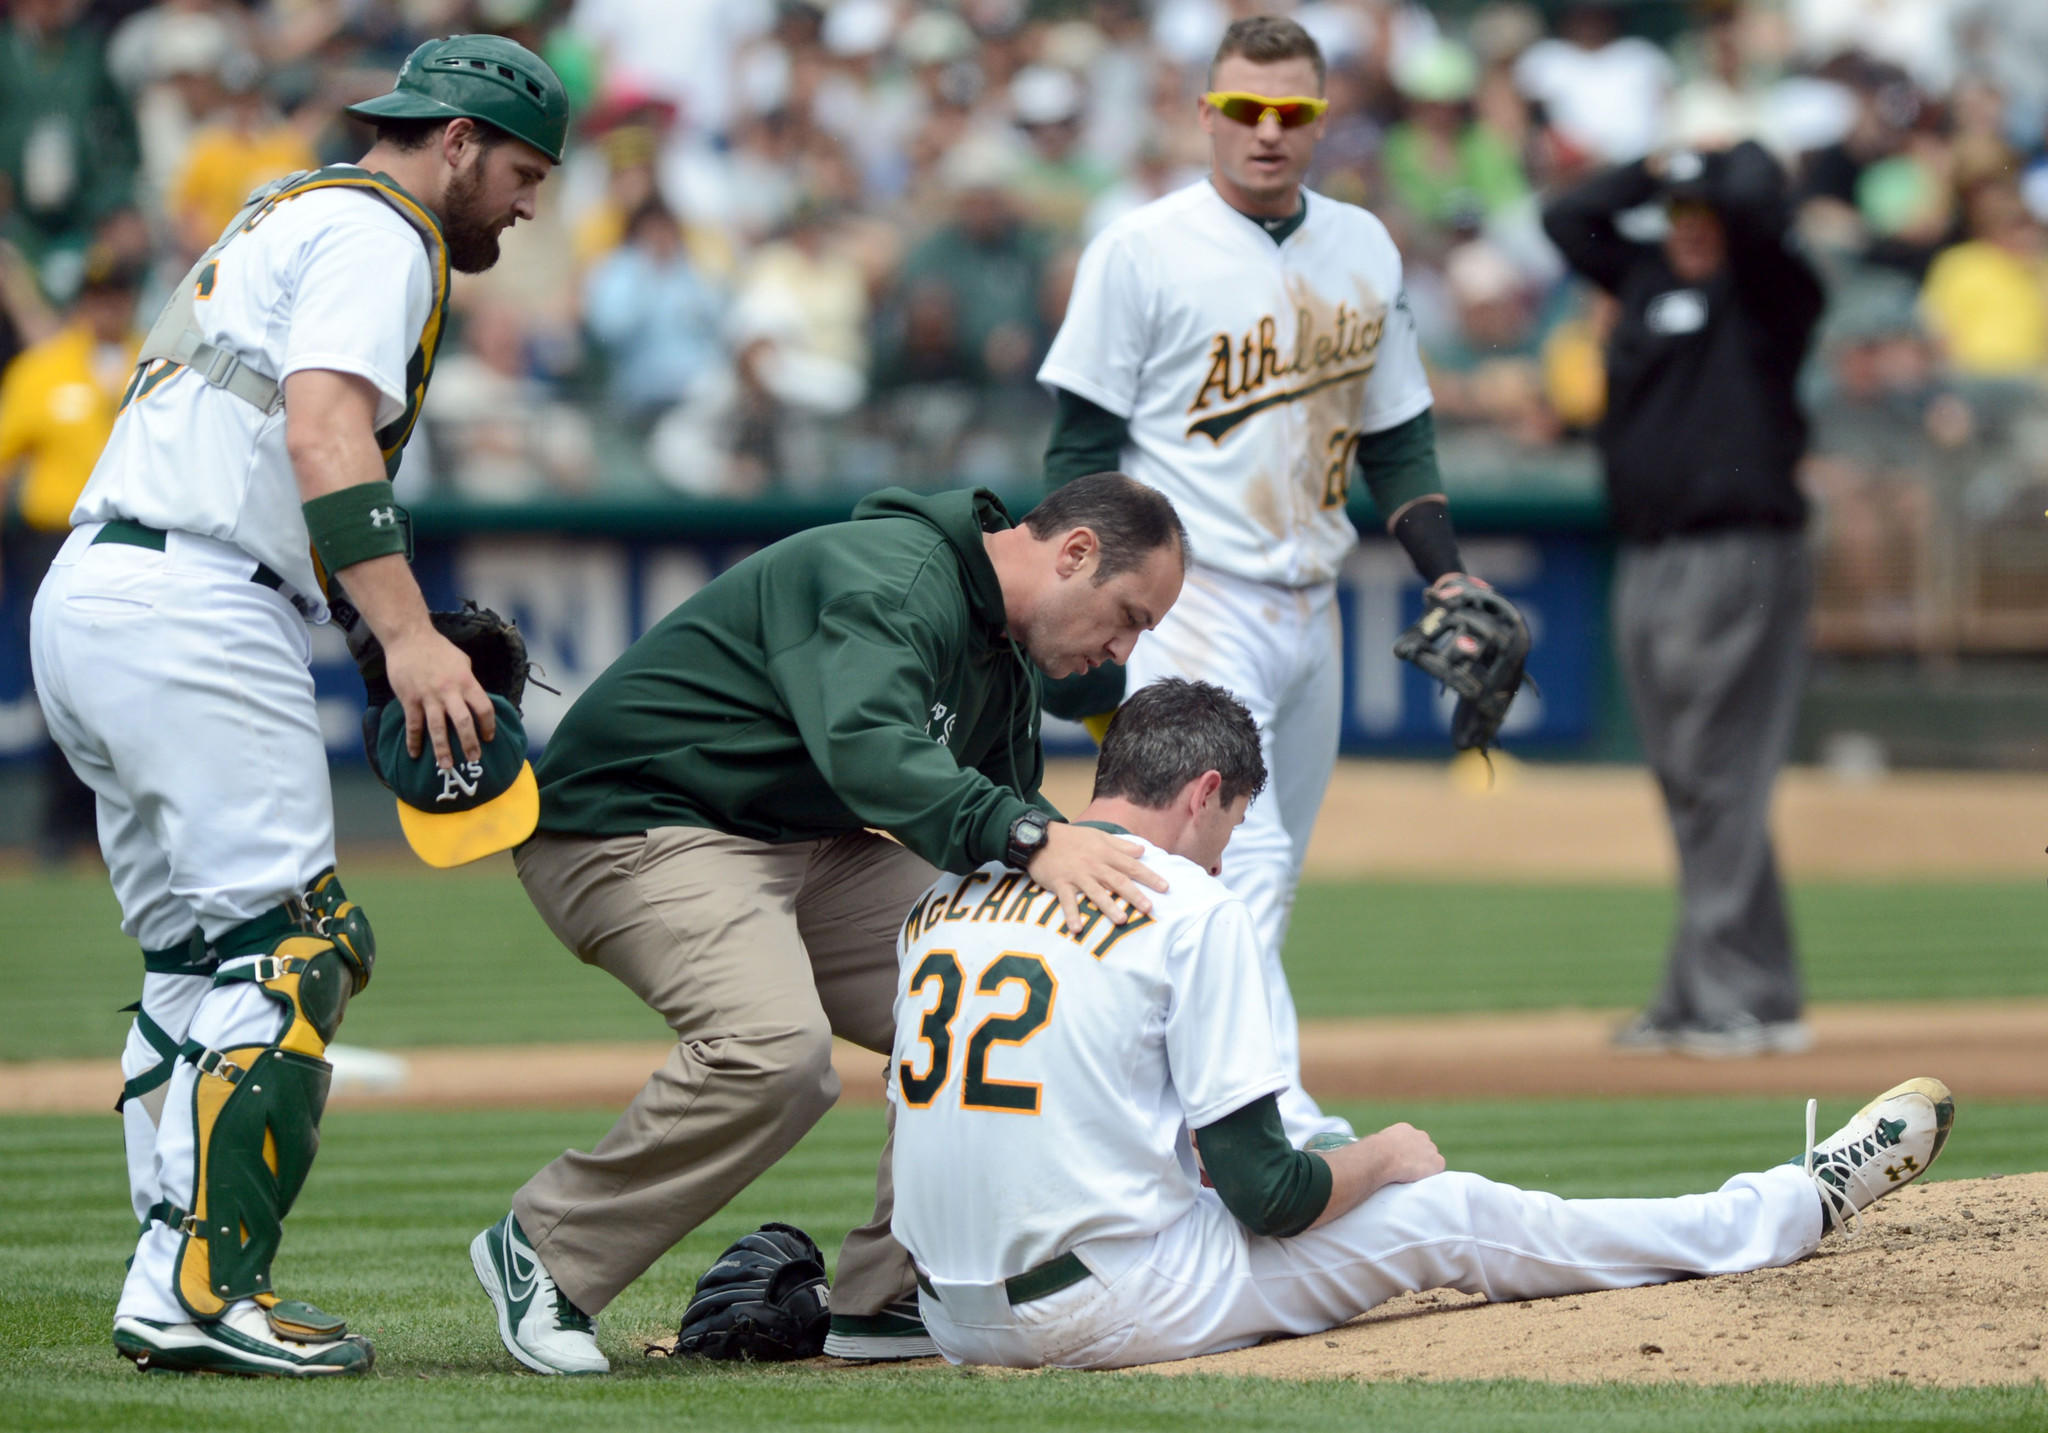 Pitcher Brandon McCarthy, then with Oakland, is attended to after being hit in the head with a line drive by the Angels' Erick Aybar during a 2012 game.